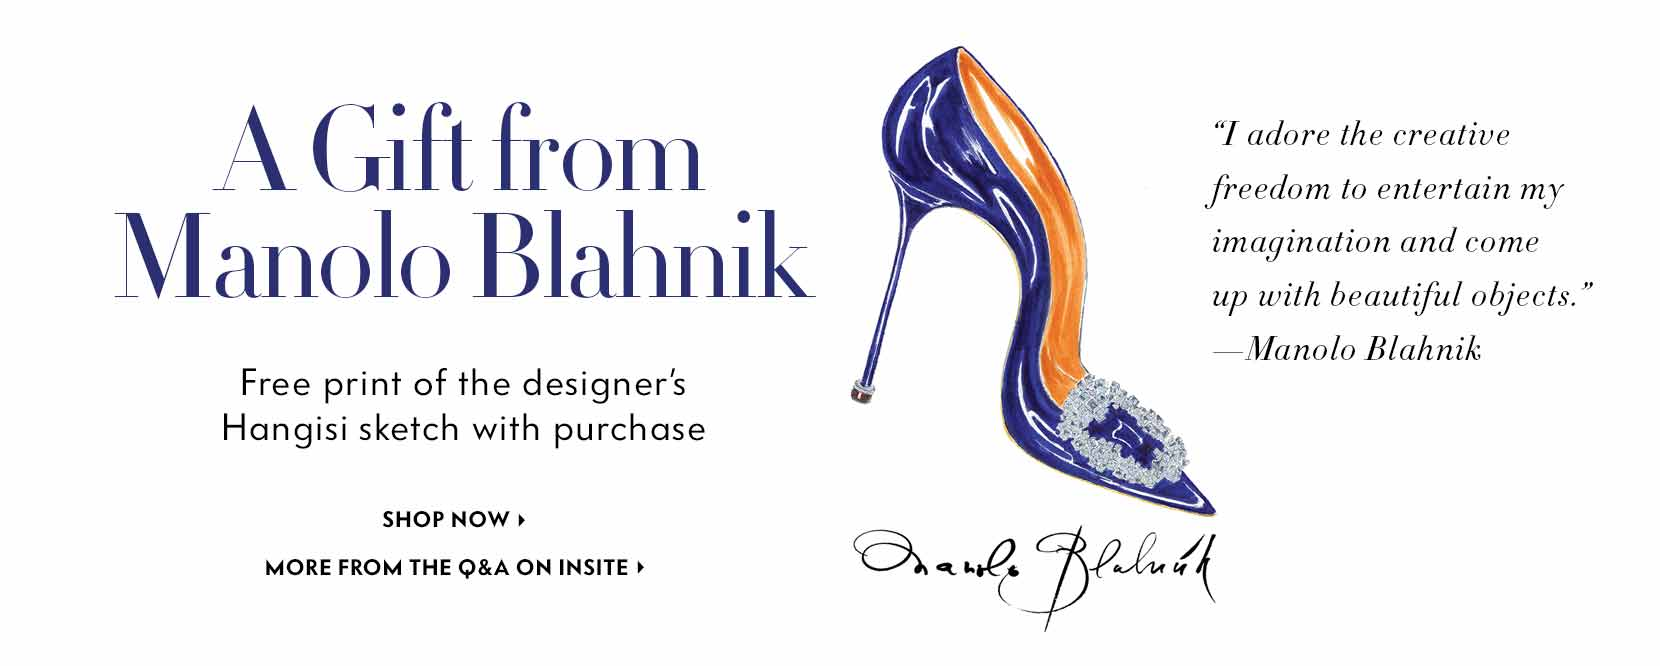 Manolo Blahnik gift with purchase